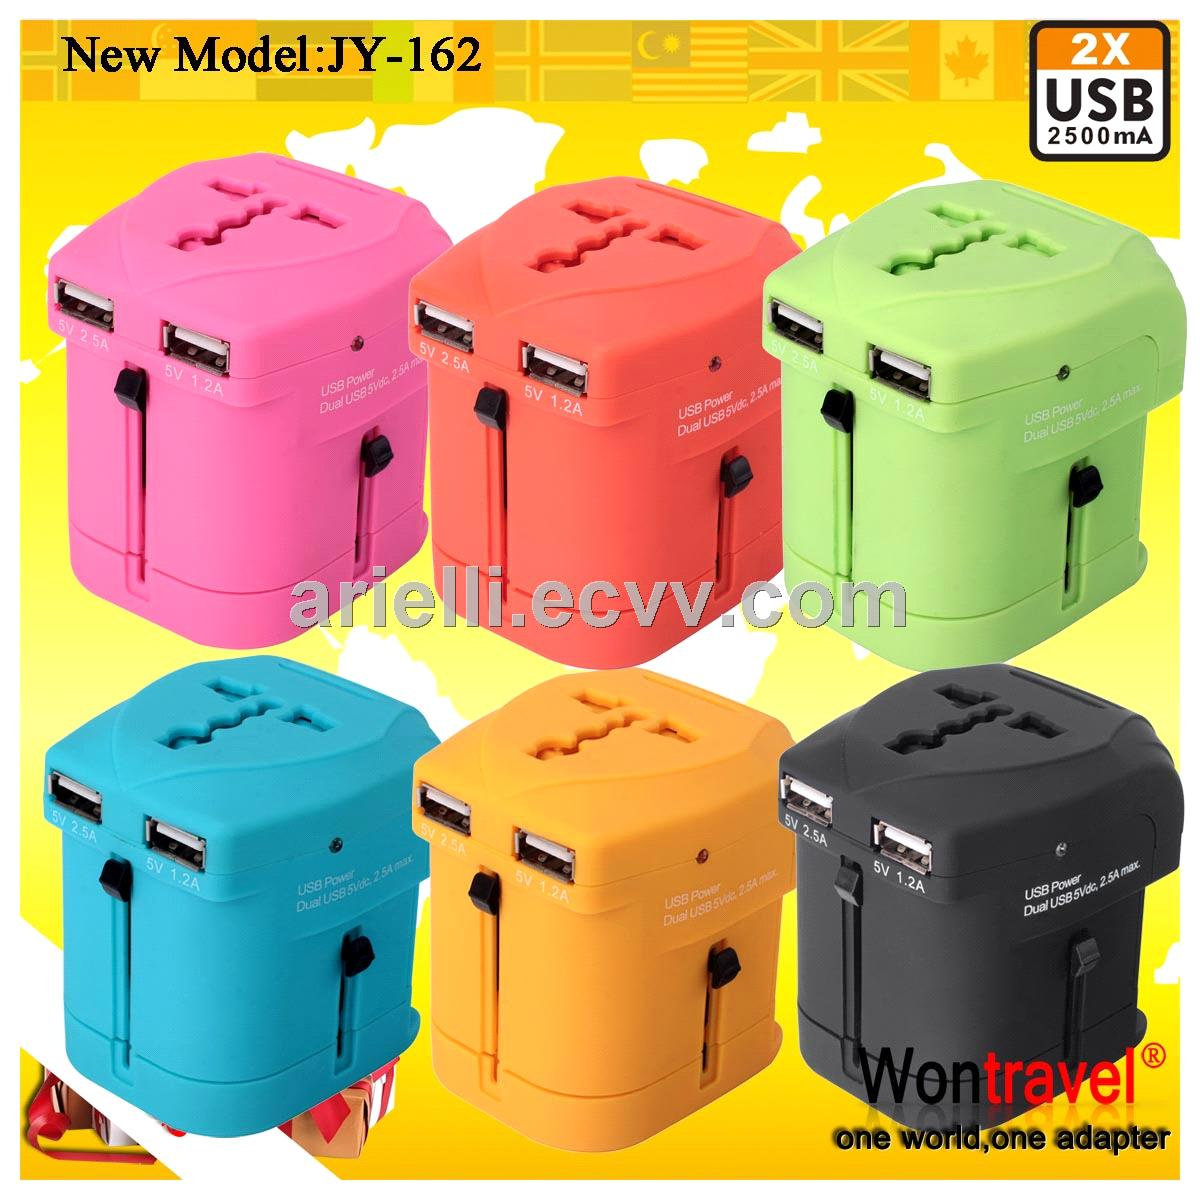 JY-162 5V 2500mA electric wireless travel adapter for business gift